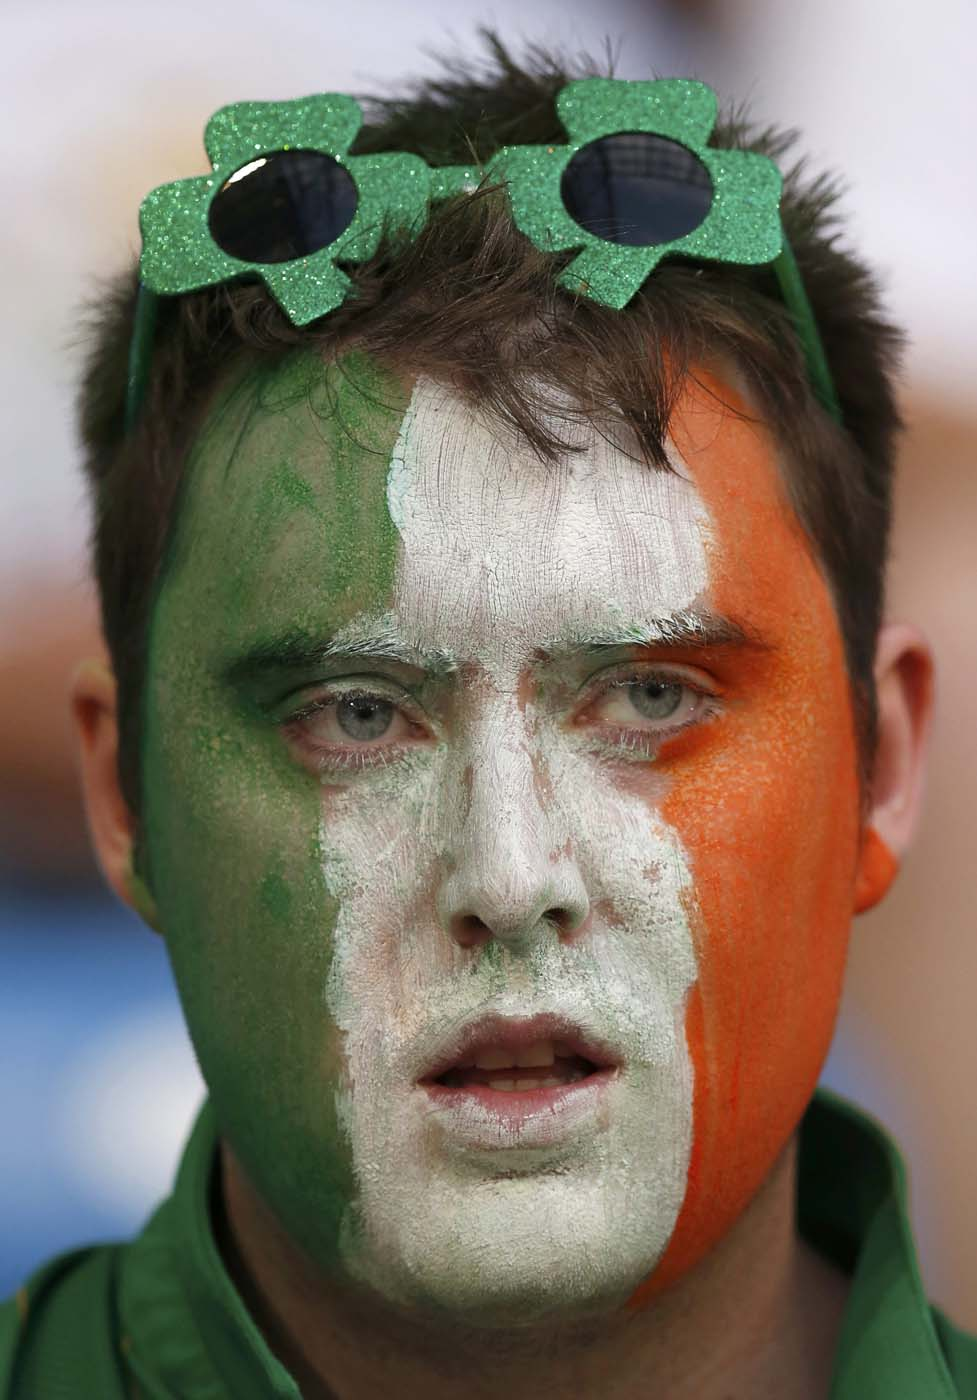 An Irish supporter cheers before their Group C Euro 2012 soccer match between Italy and Ireland at the city stadium in Poznan, June 18, 2012. (Petr Josek/Reuters)